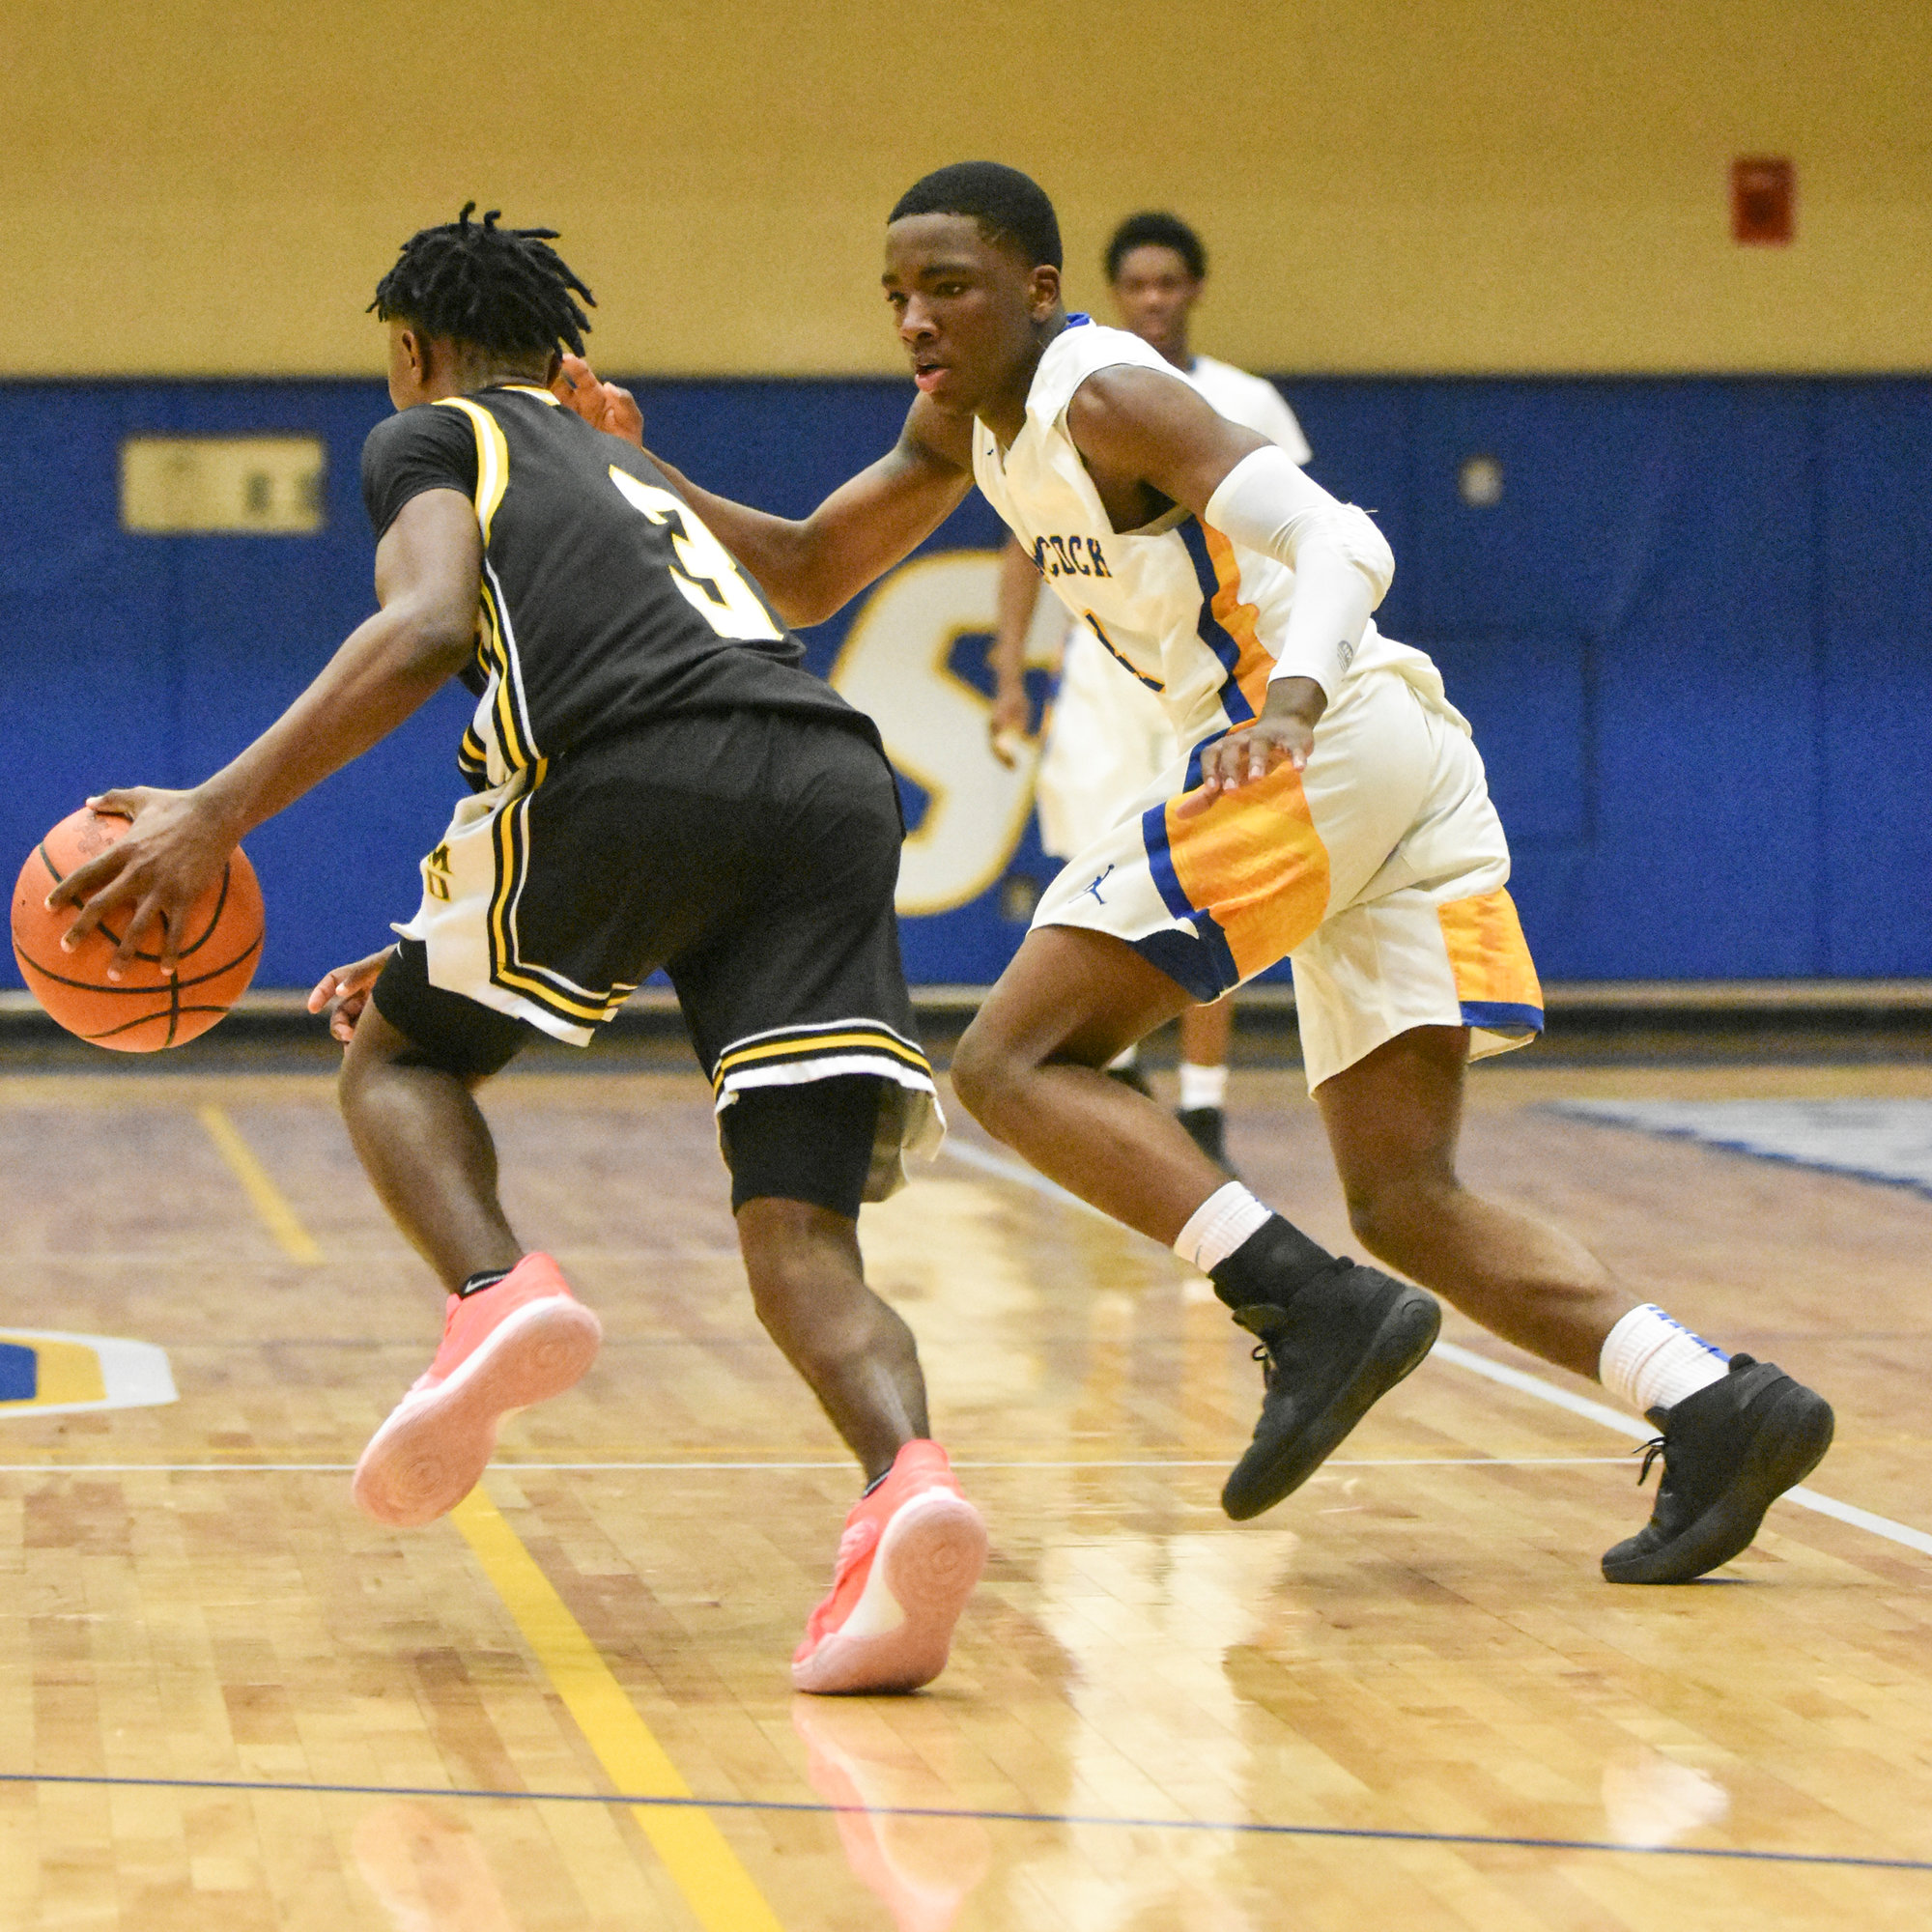 Sumter's Cody McCoy defends Irmo's Dylan Williams on Friday during the Gamecocks' 60-47 loss to the Yellow Jackets in a key Region IV-5A showdown at the Sumter High gymnasium.